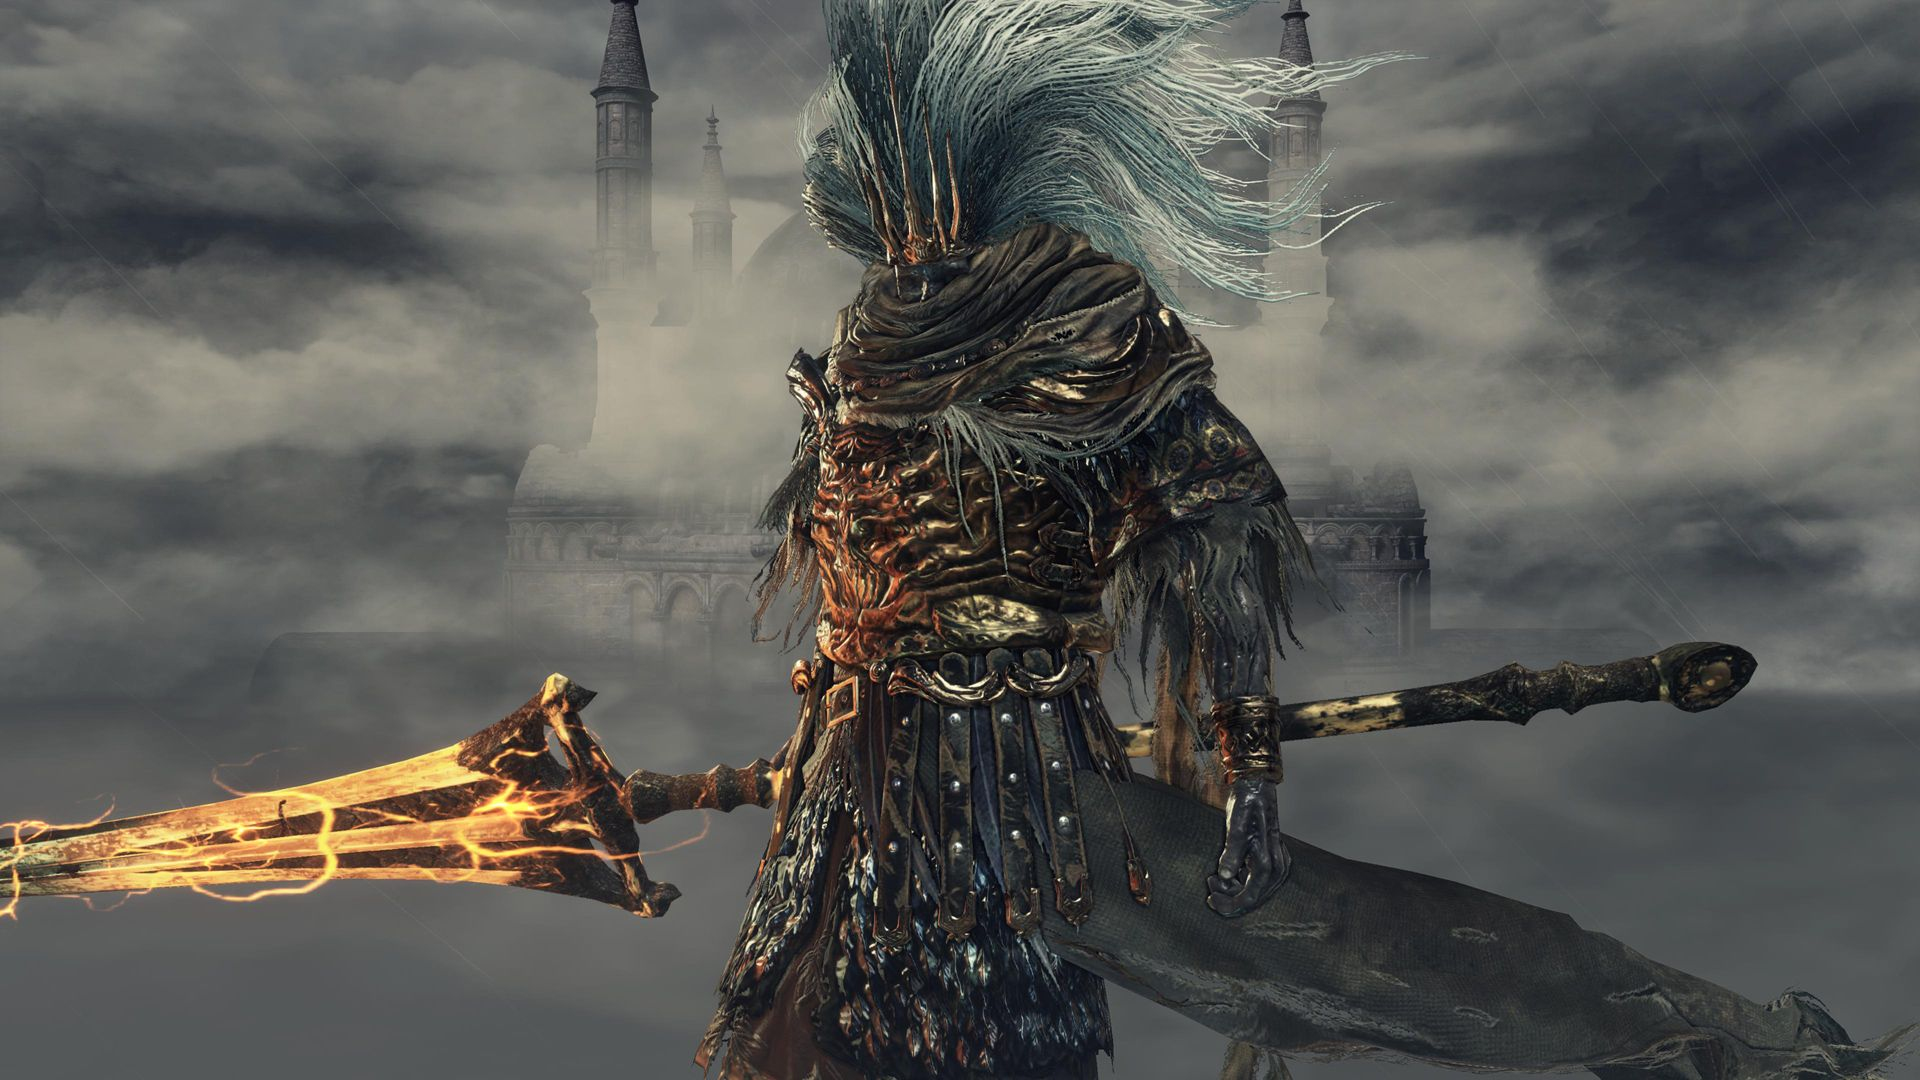 dark souls 3 hd wallpaper, dark souls 3 animated wallpaper